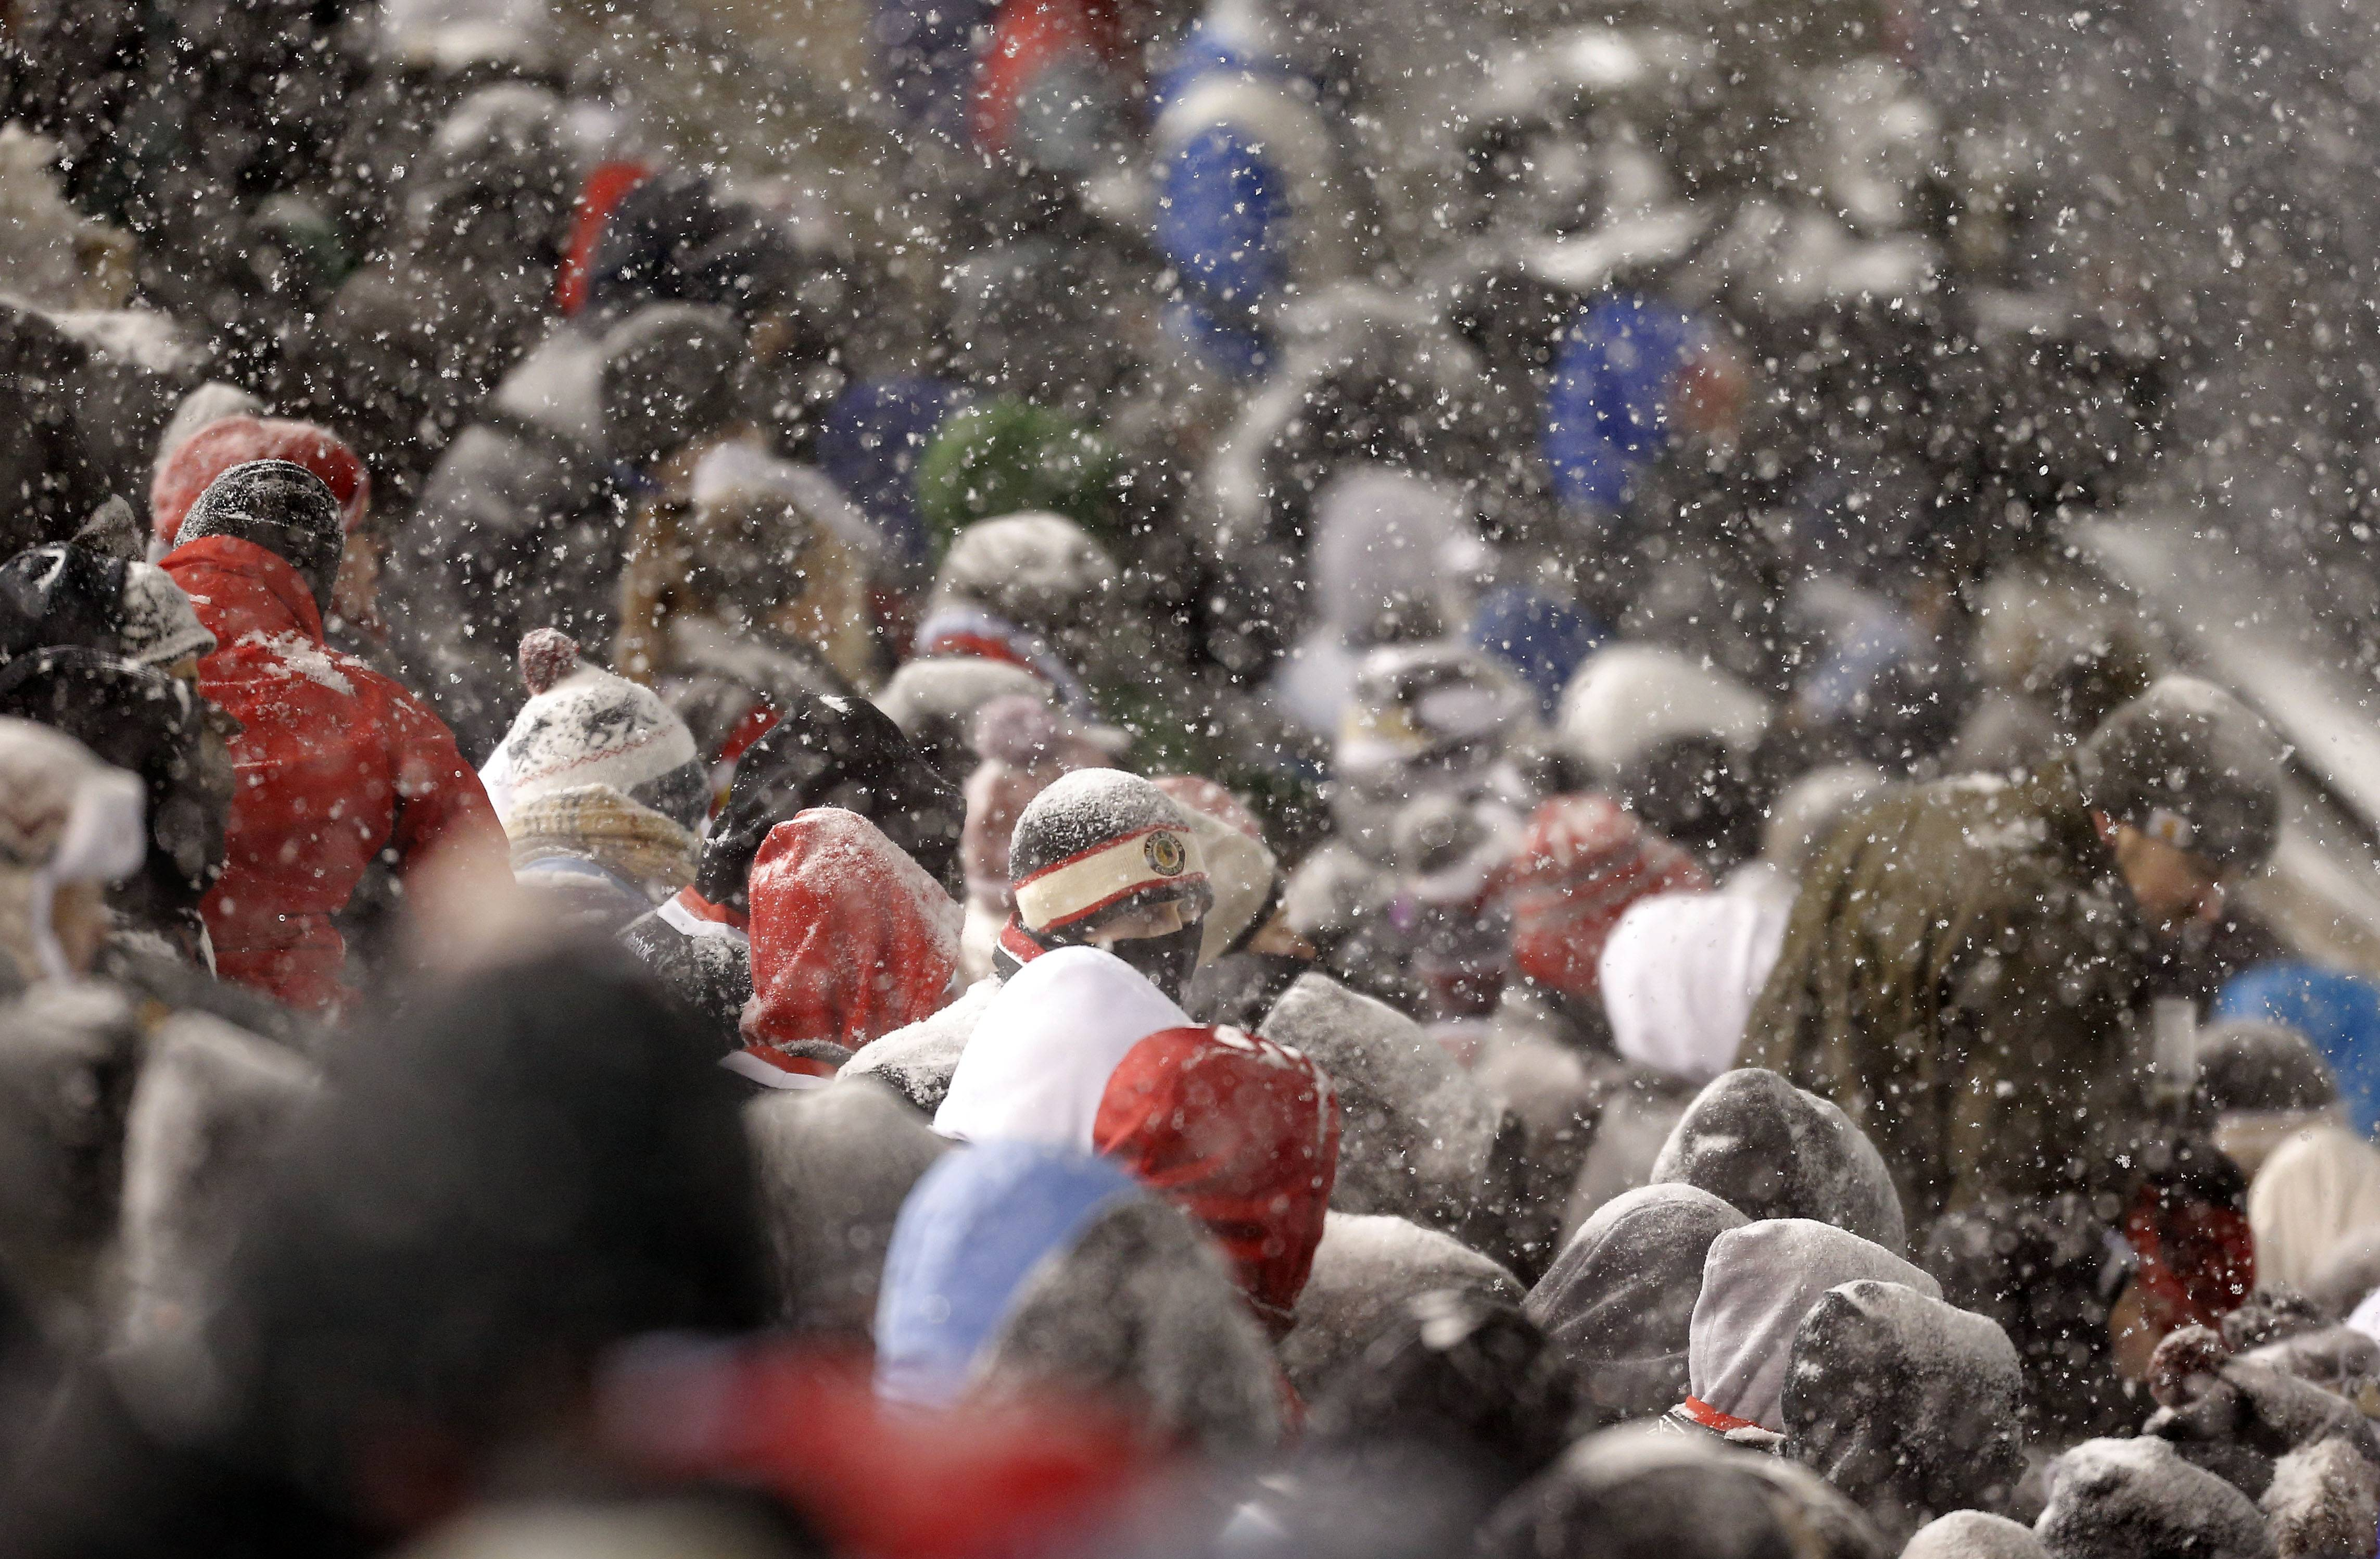 Snow covers fans during the NHL Stadium Series between the Blackhawks and the Penguins Saturday at Soldier Field.